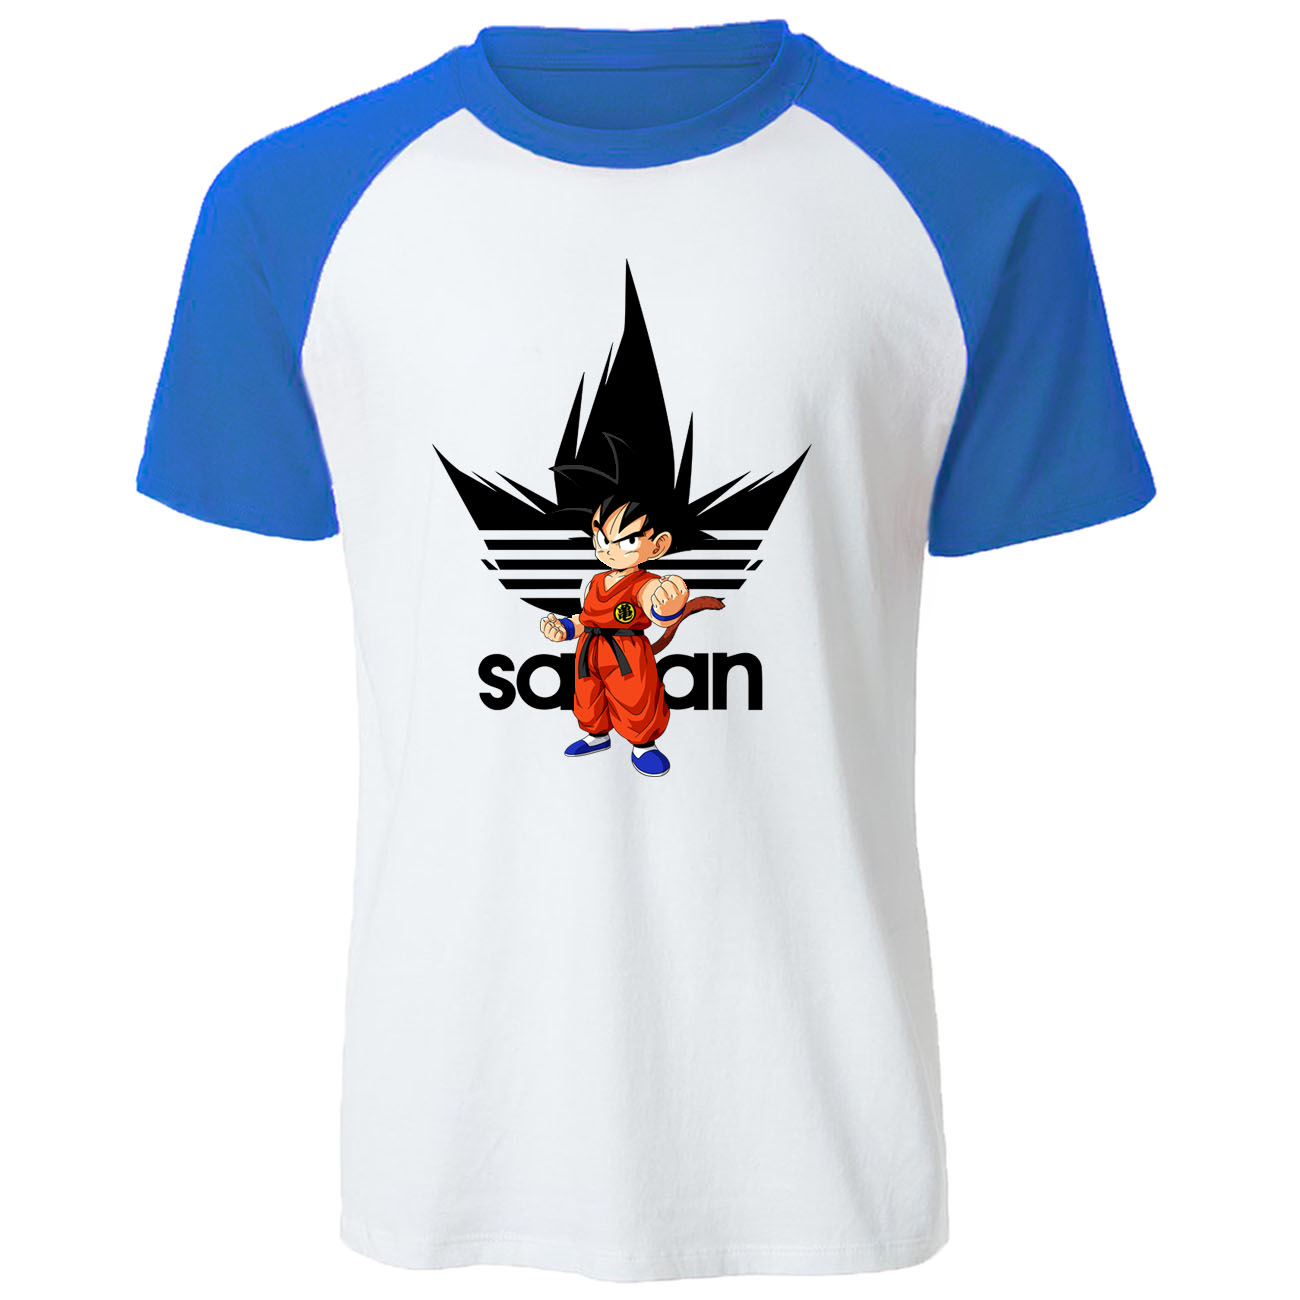 DragonBall Z Raglan Tops Dragon Ball T Shirt Dragonball Dbz Son Goku Tshirt Japanese Anime T-shirt Men Harajuku Casual Tee Shirt